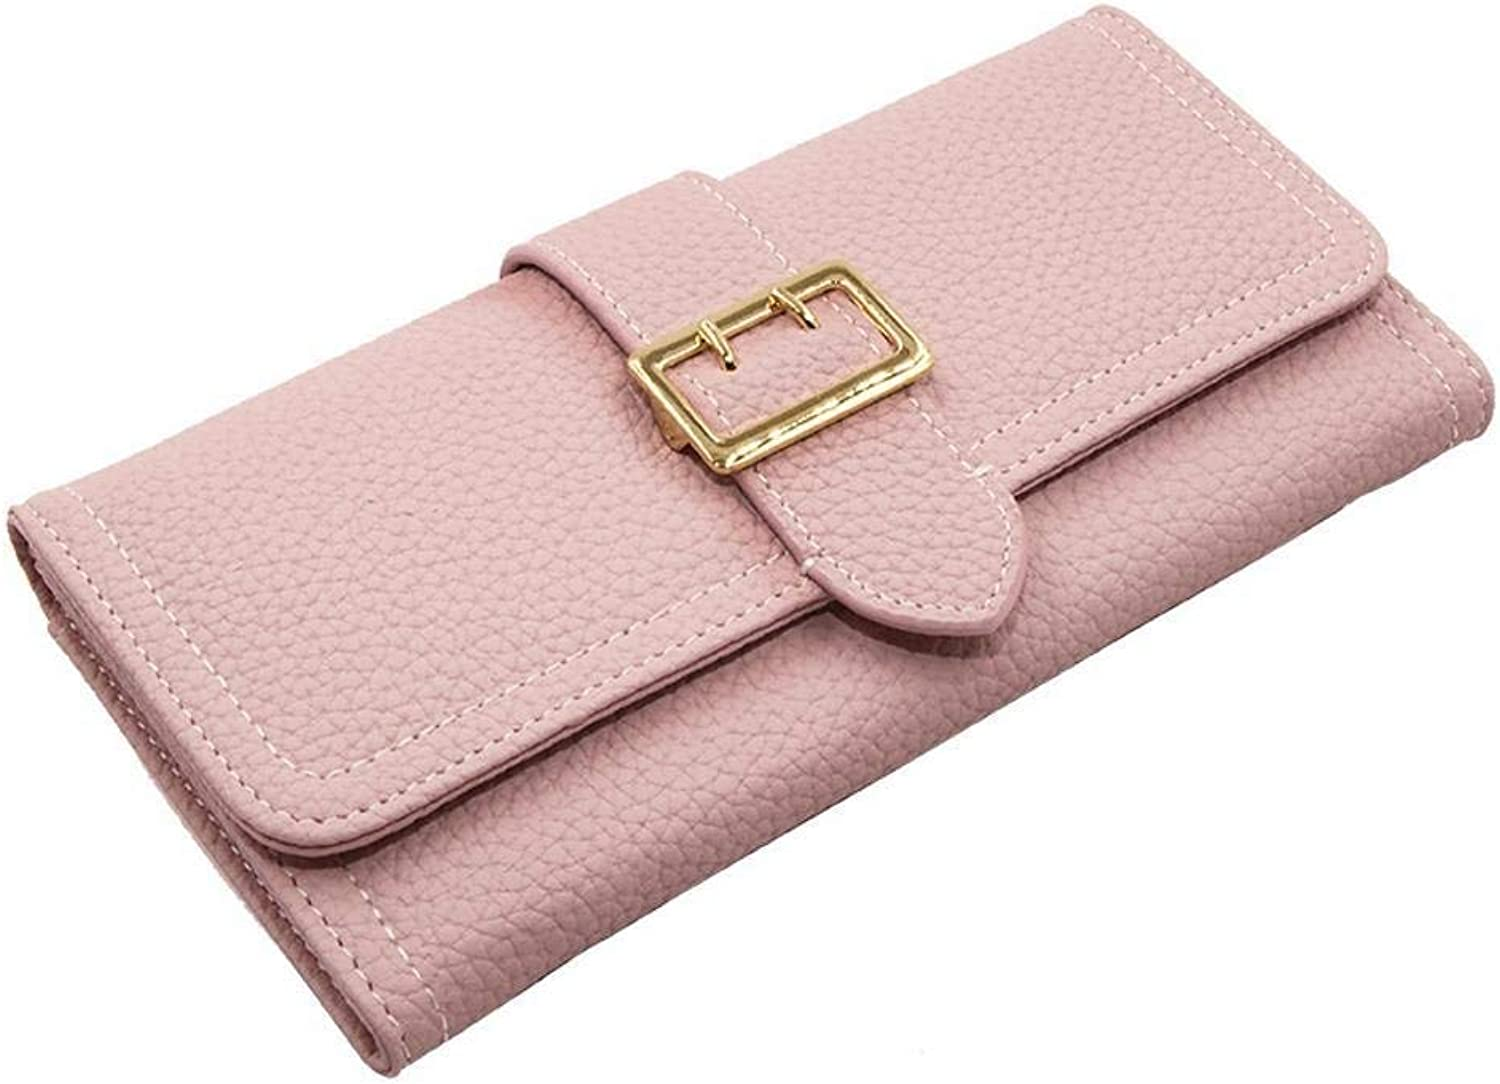 Girls Purse Women's Wallet,Lady Purse Hand Wrap Zip Around Wallet PU Leather (color   E)